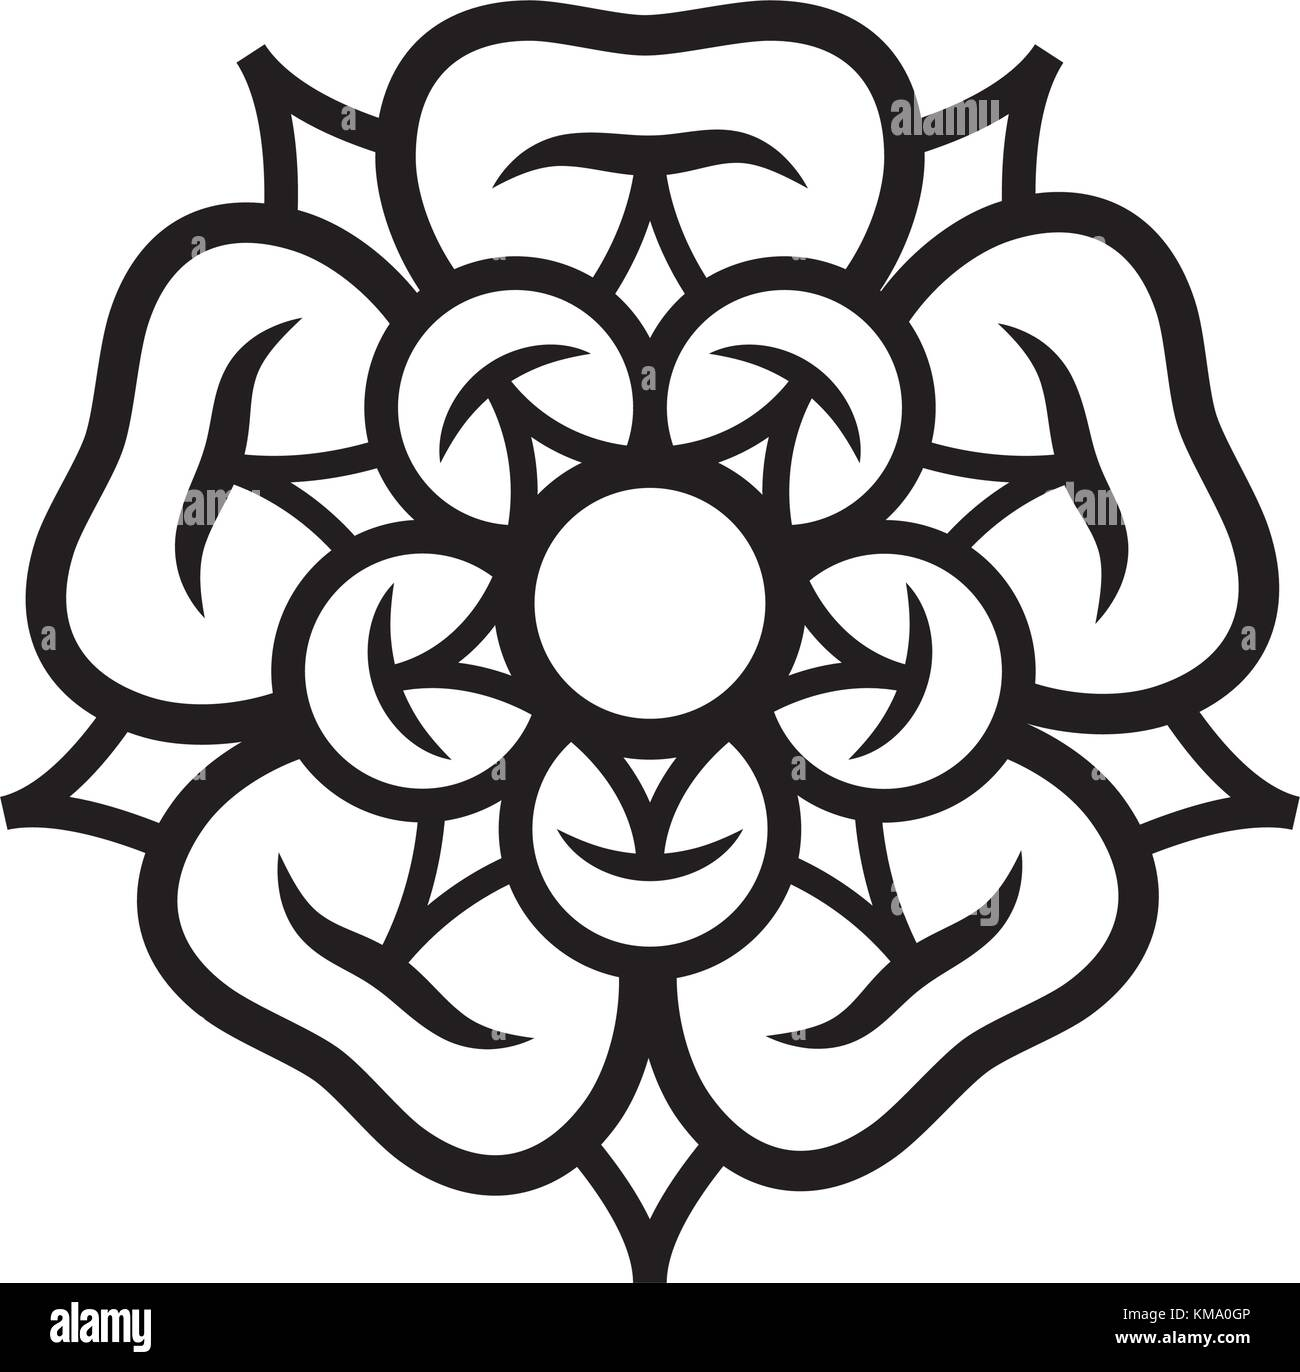 tudor rose symbol stock photos tudor rose symbol stock images alamy. Black Bedroom Furniture Sets. Home Design Ideas